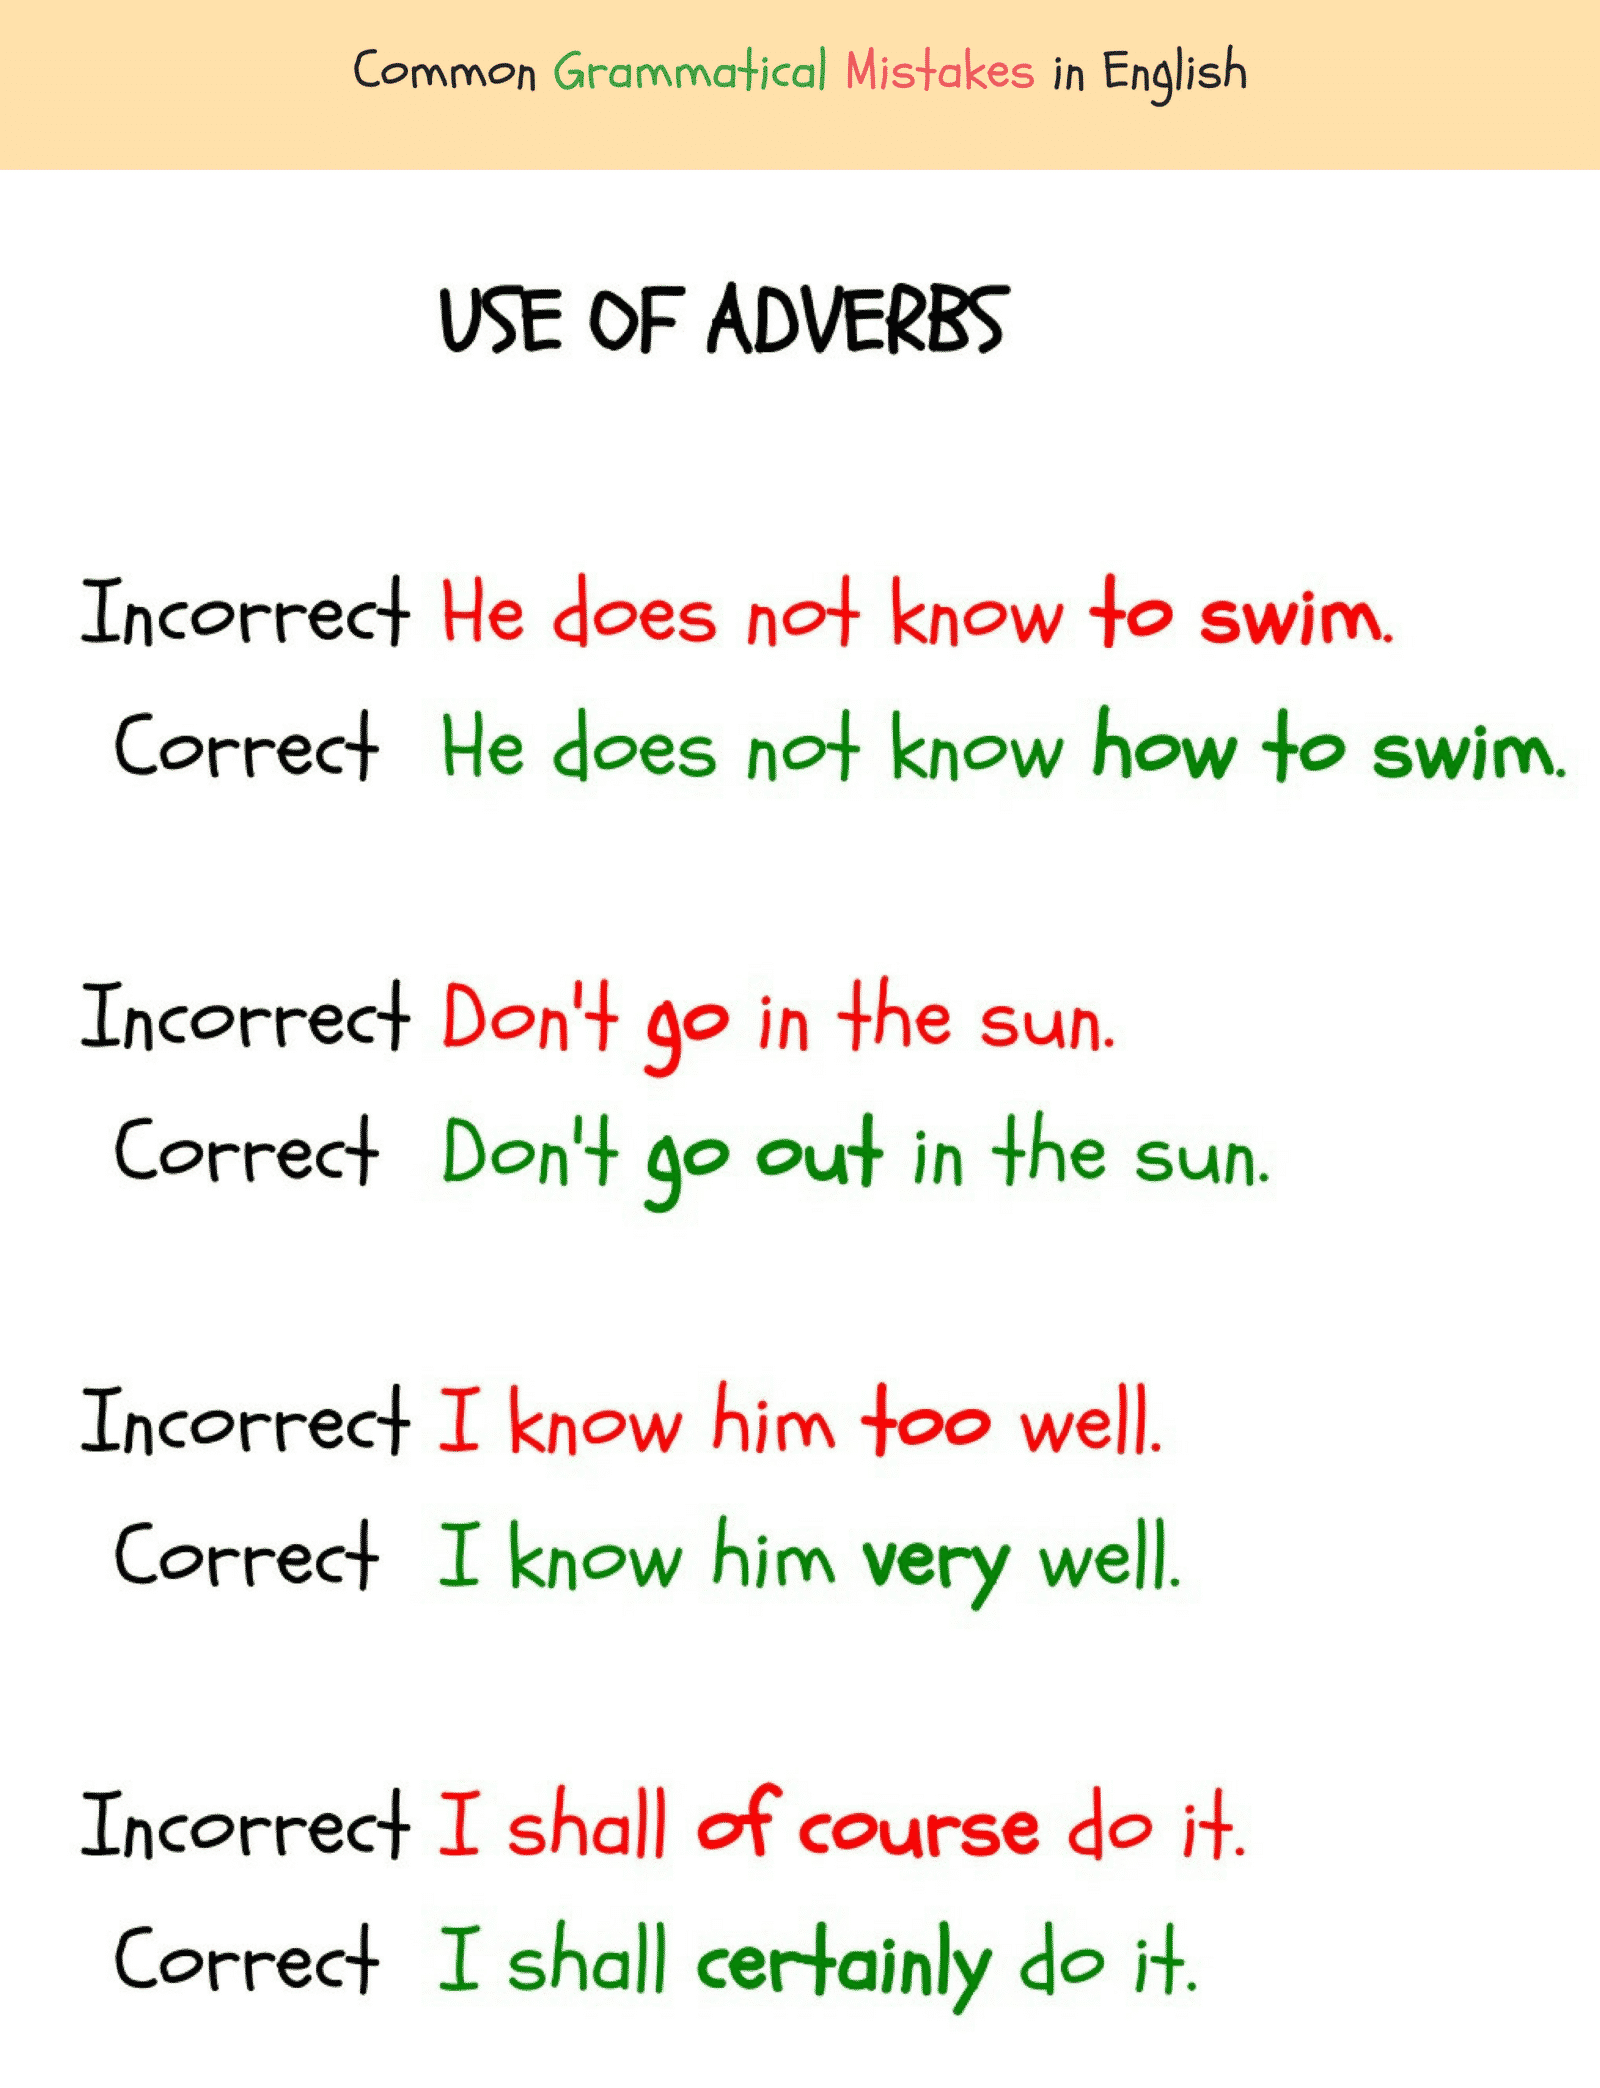 Errors in the Use of English Adverbs